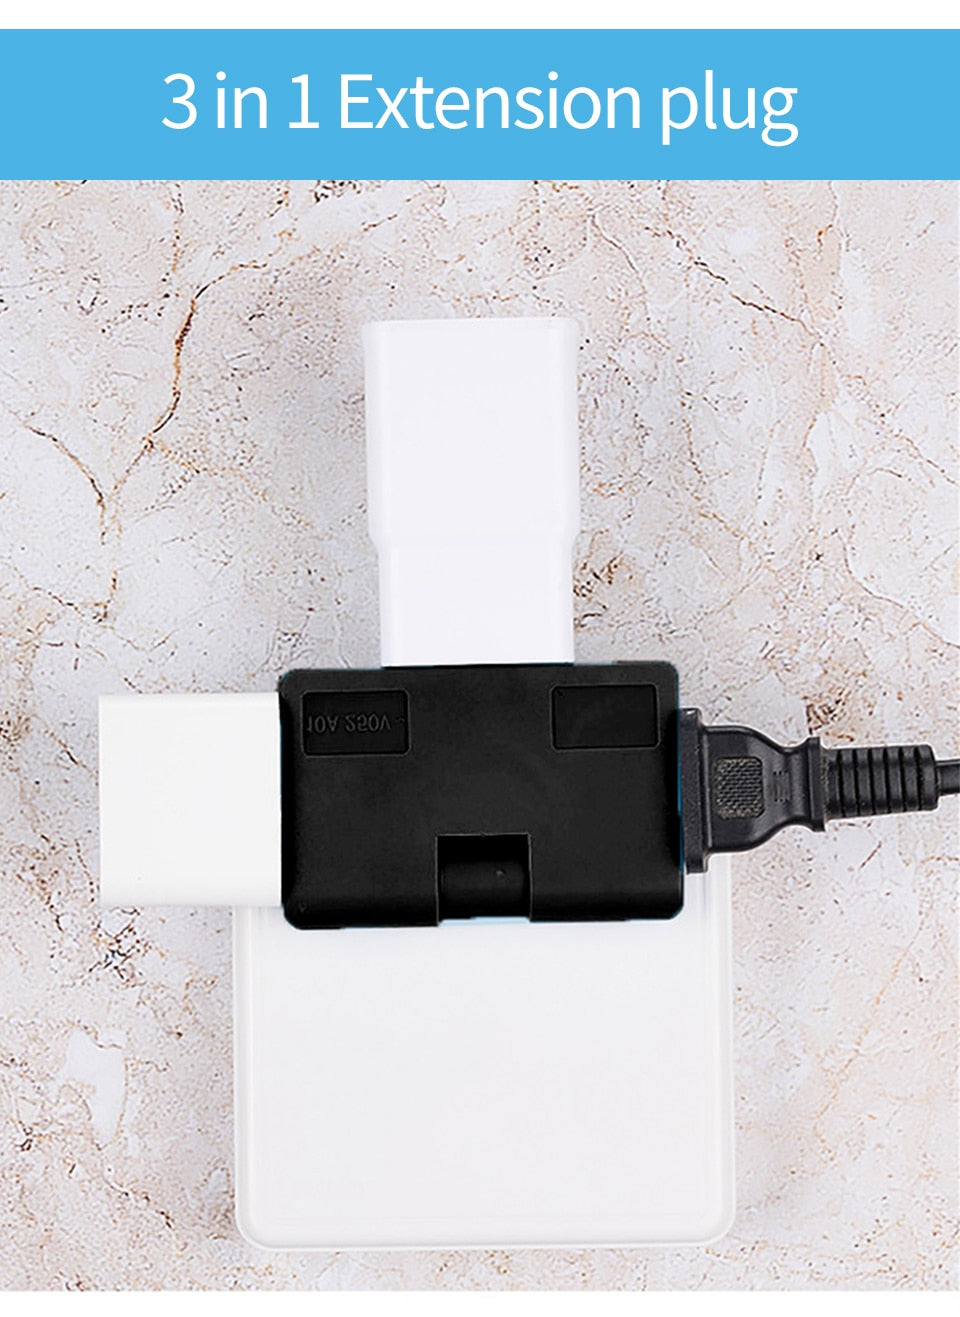 Foldable Power Plug, Power Plug Adapter Extension Travel Socket For 3 Devices